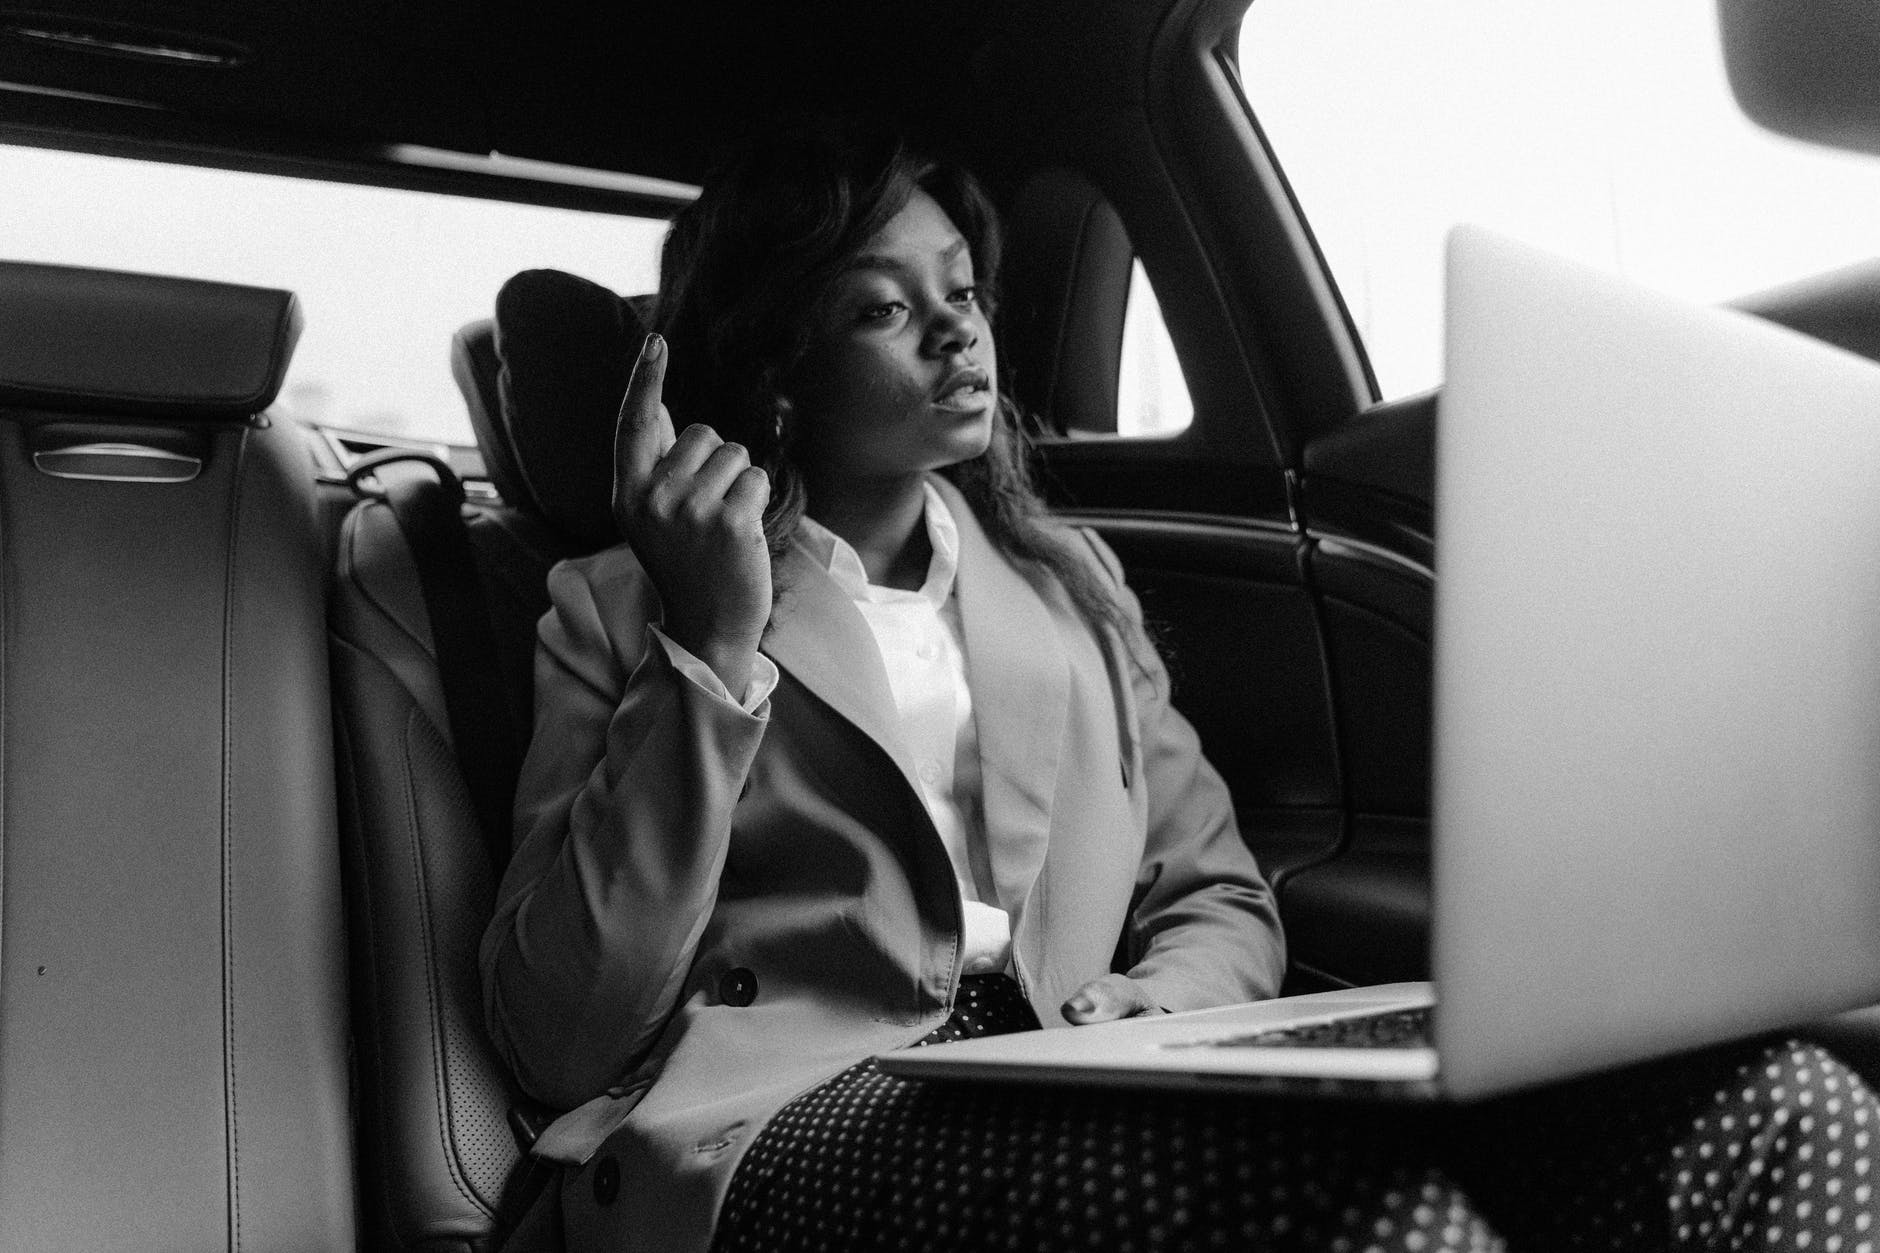 A black and white photo of a professional black woman in the back of a car with a laptop on her lap talking on confrence call.